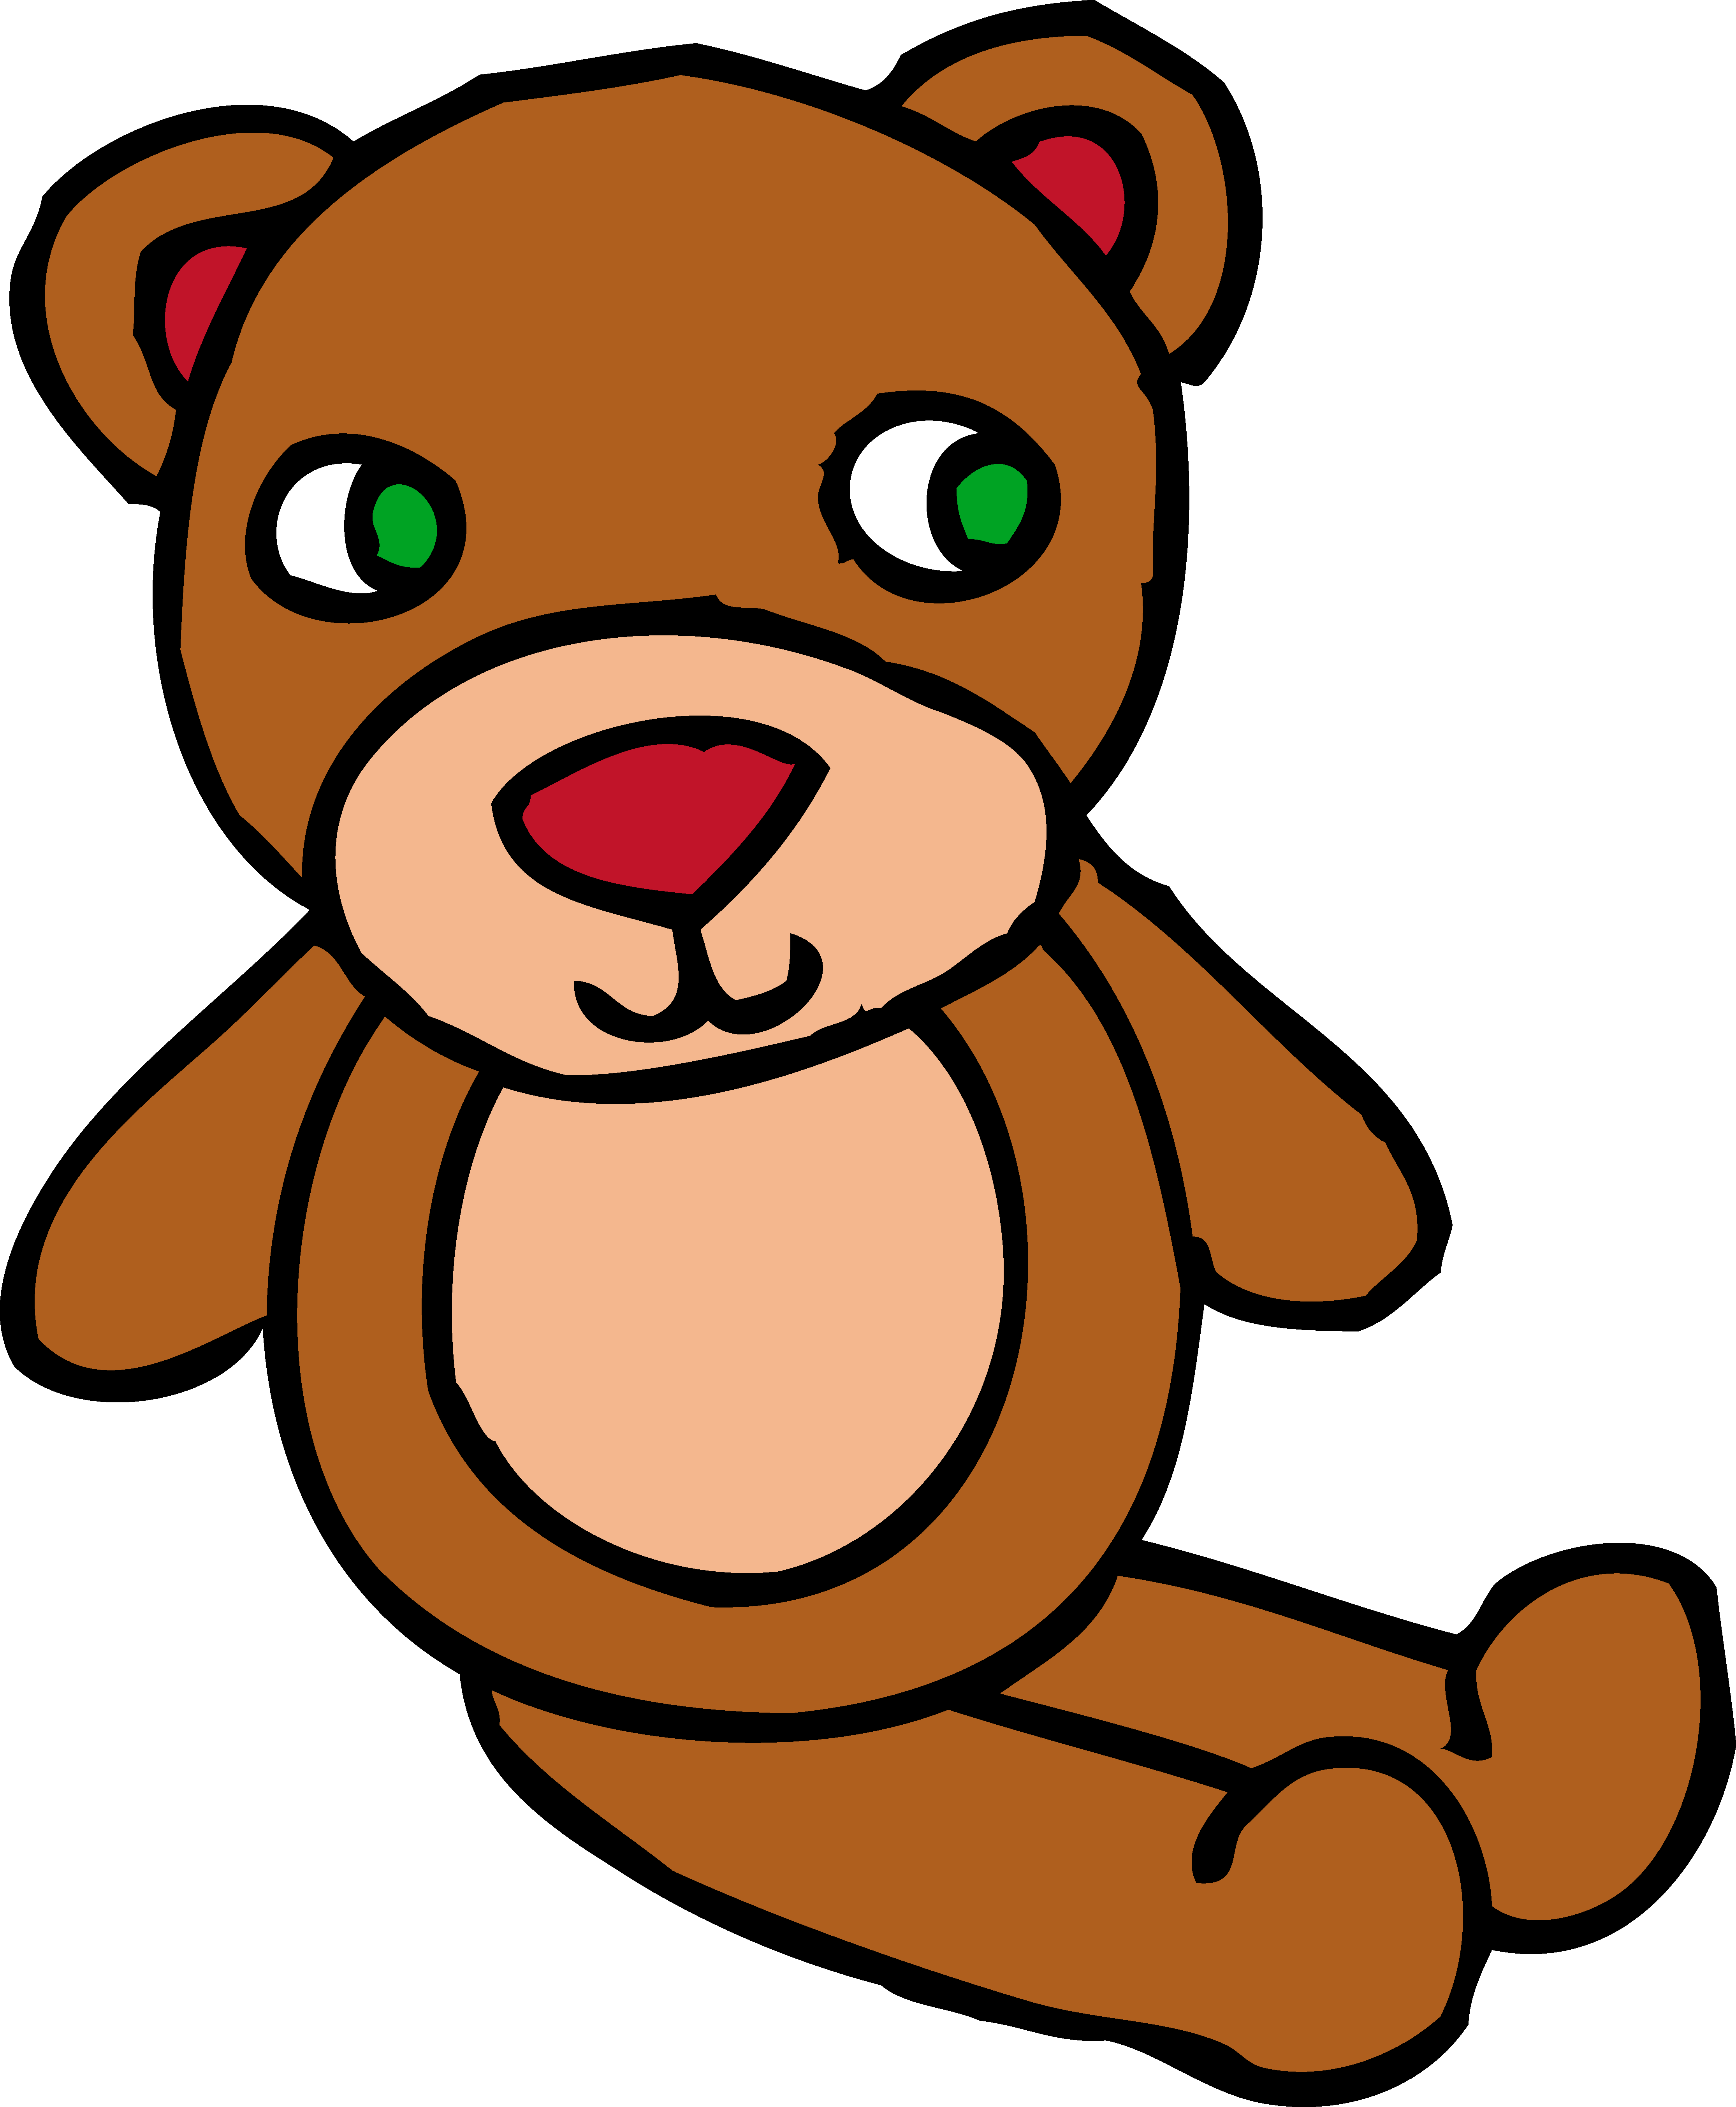 Toy pencil and in. Medical clipart teddy bear